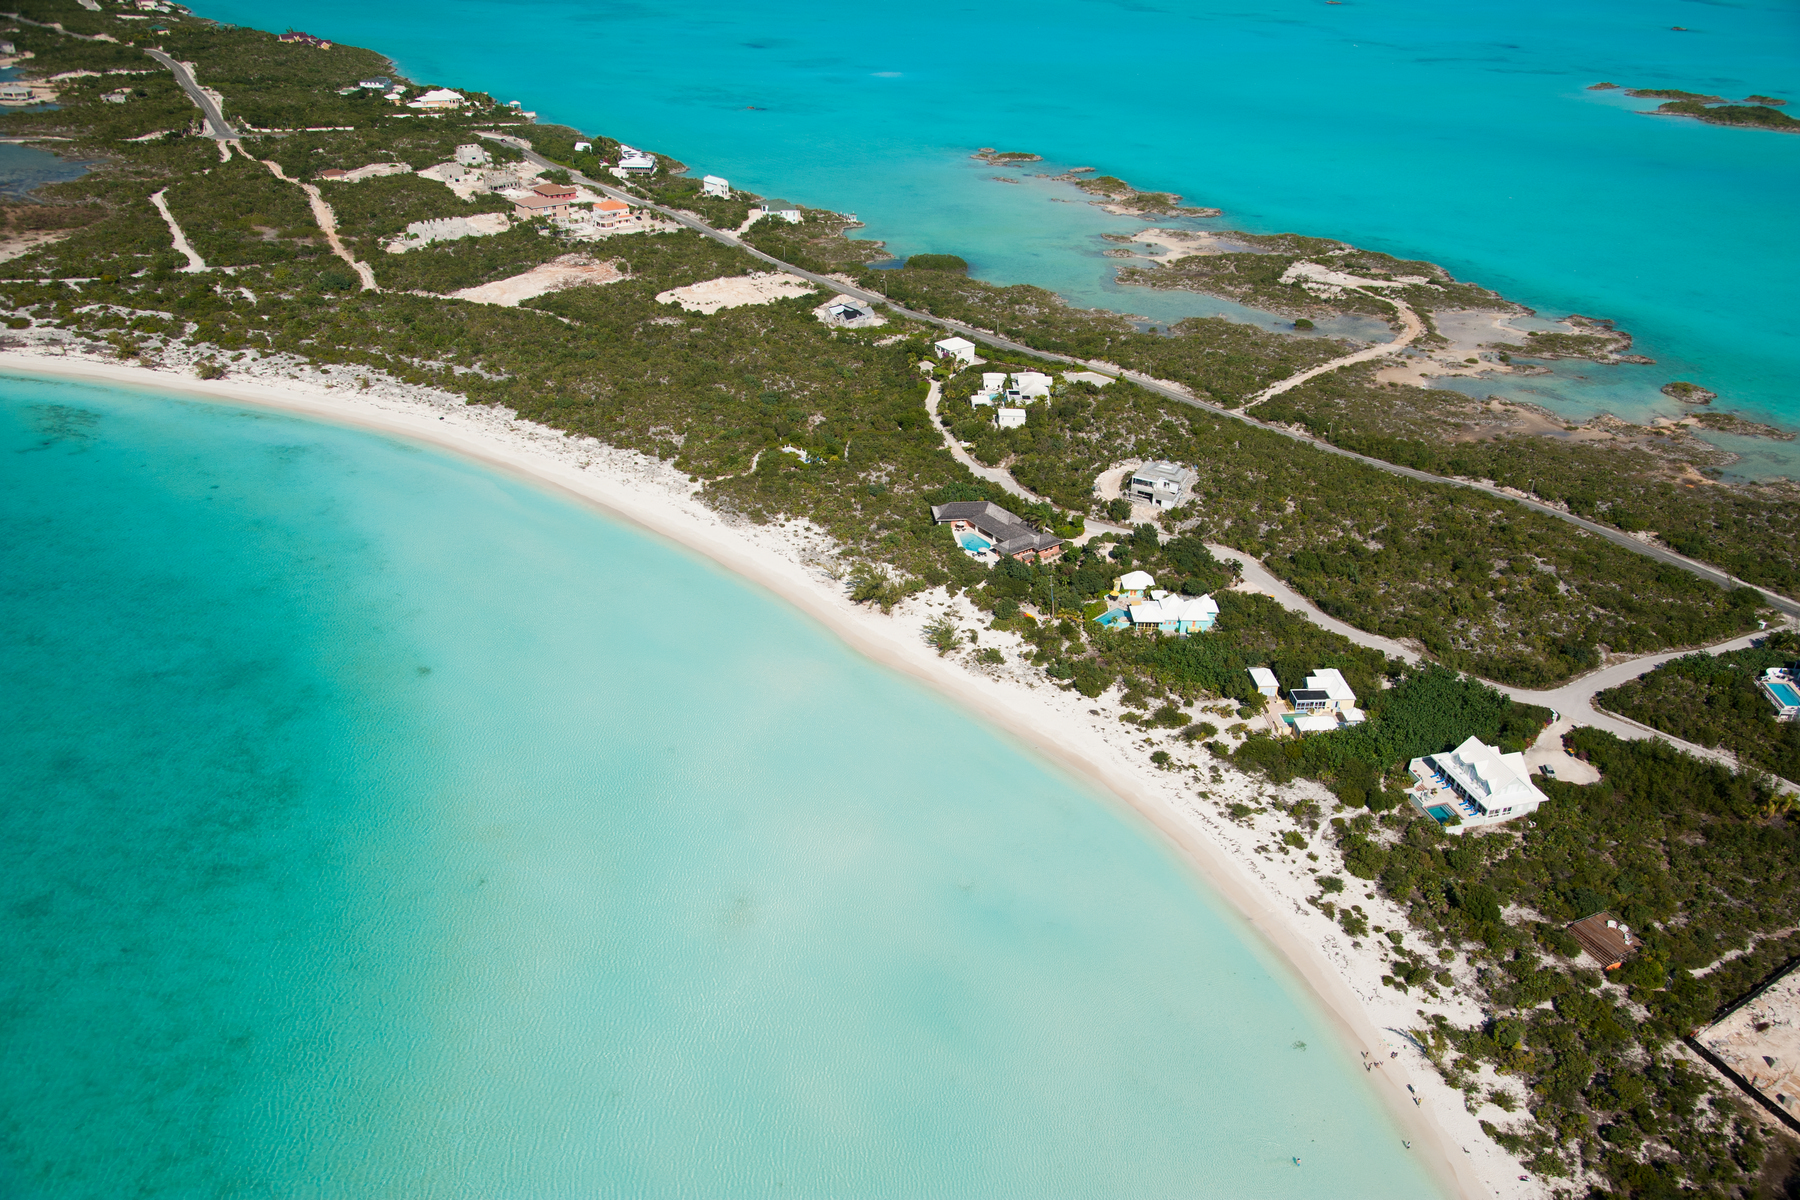 Land for Sale at Oceanview Lot on Sunset Bay Chalk Sound, Providenciales Turks And Caicos Islands